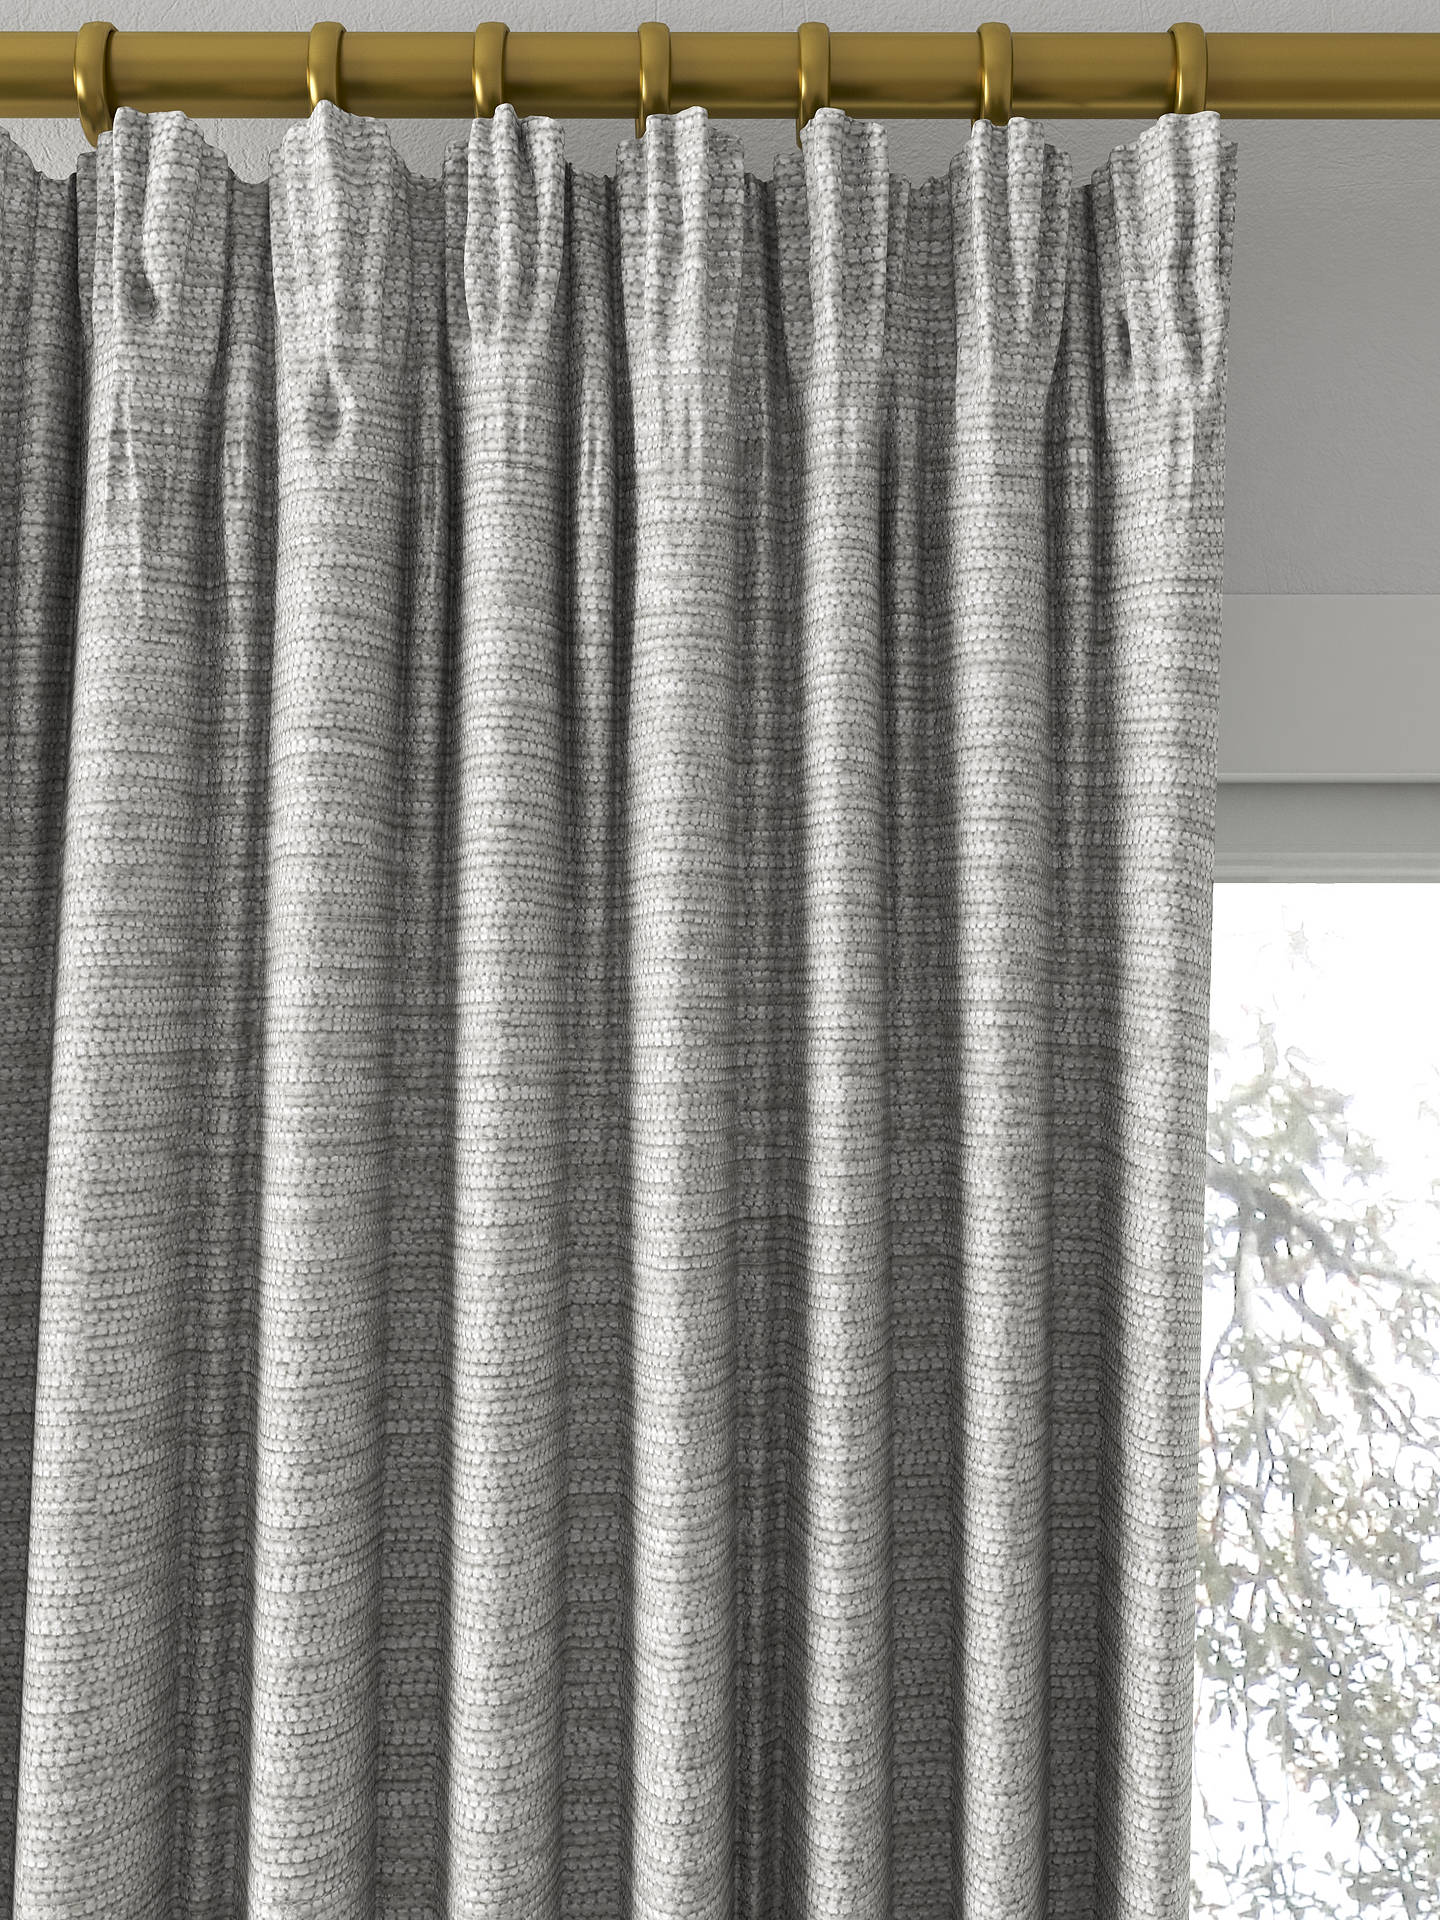 BuyJohn Lewis Partners Zambia Made To Measure Curtains Silver Online At Johnlewis